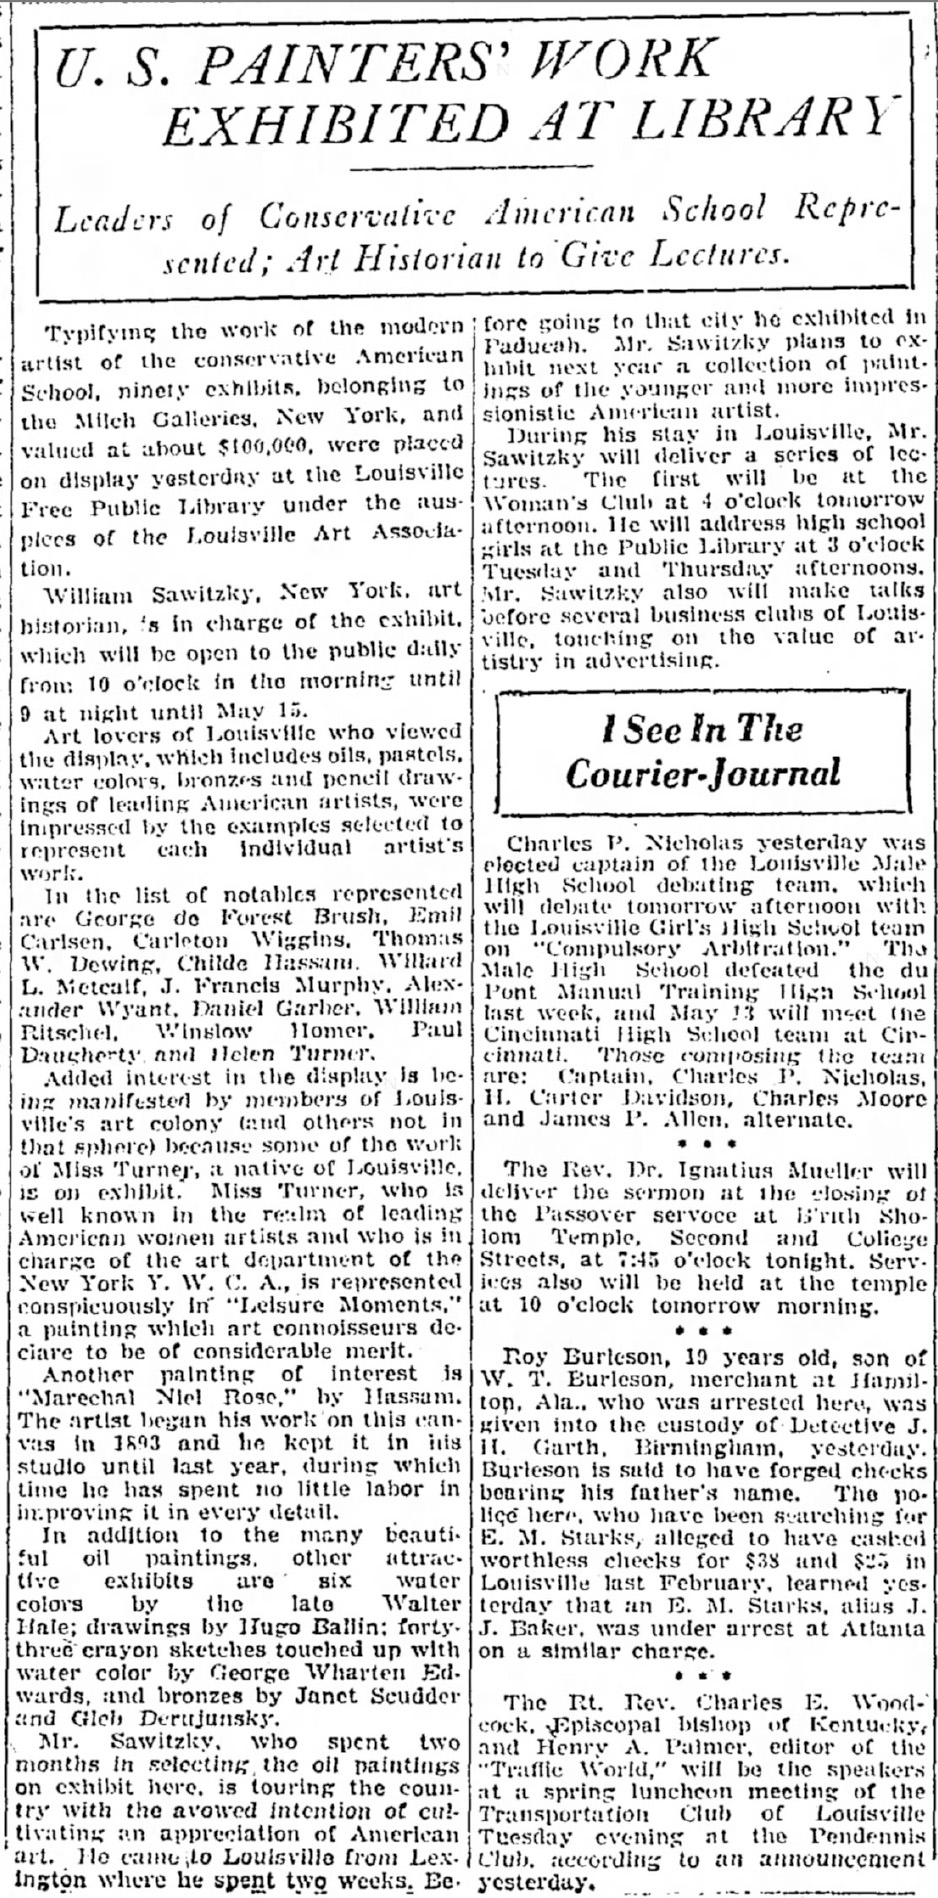 """The Courier Journal, Louisville, KY, """"U.S. painters' work exhibited at library : leaders of conservative American school represented ; art historian to give lectures"""", April 28, 1921, not illustrated."""